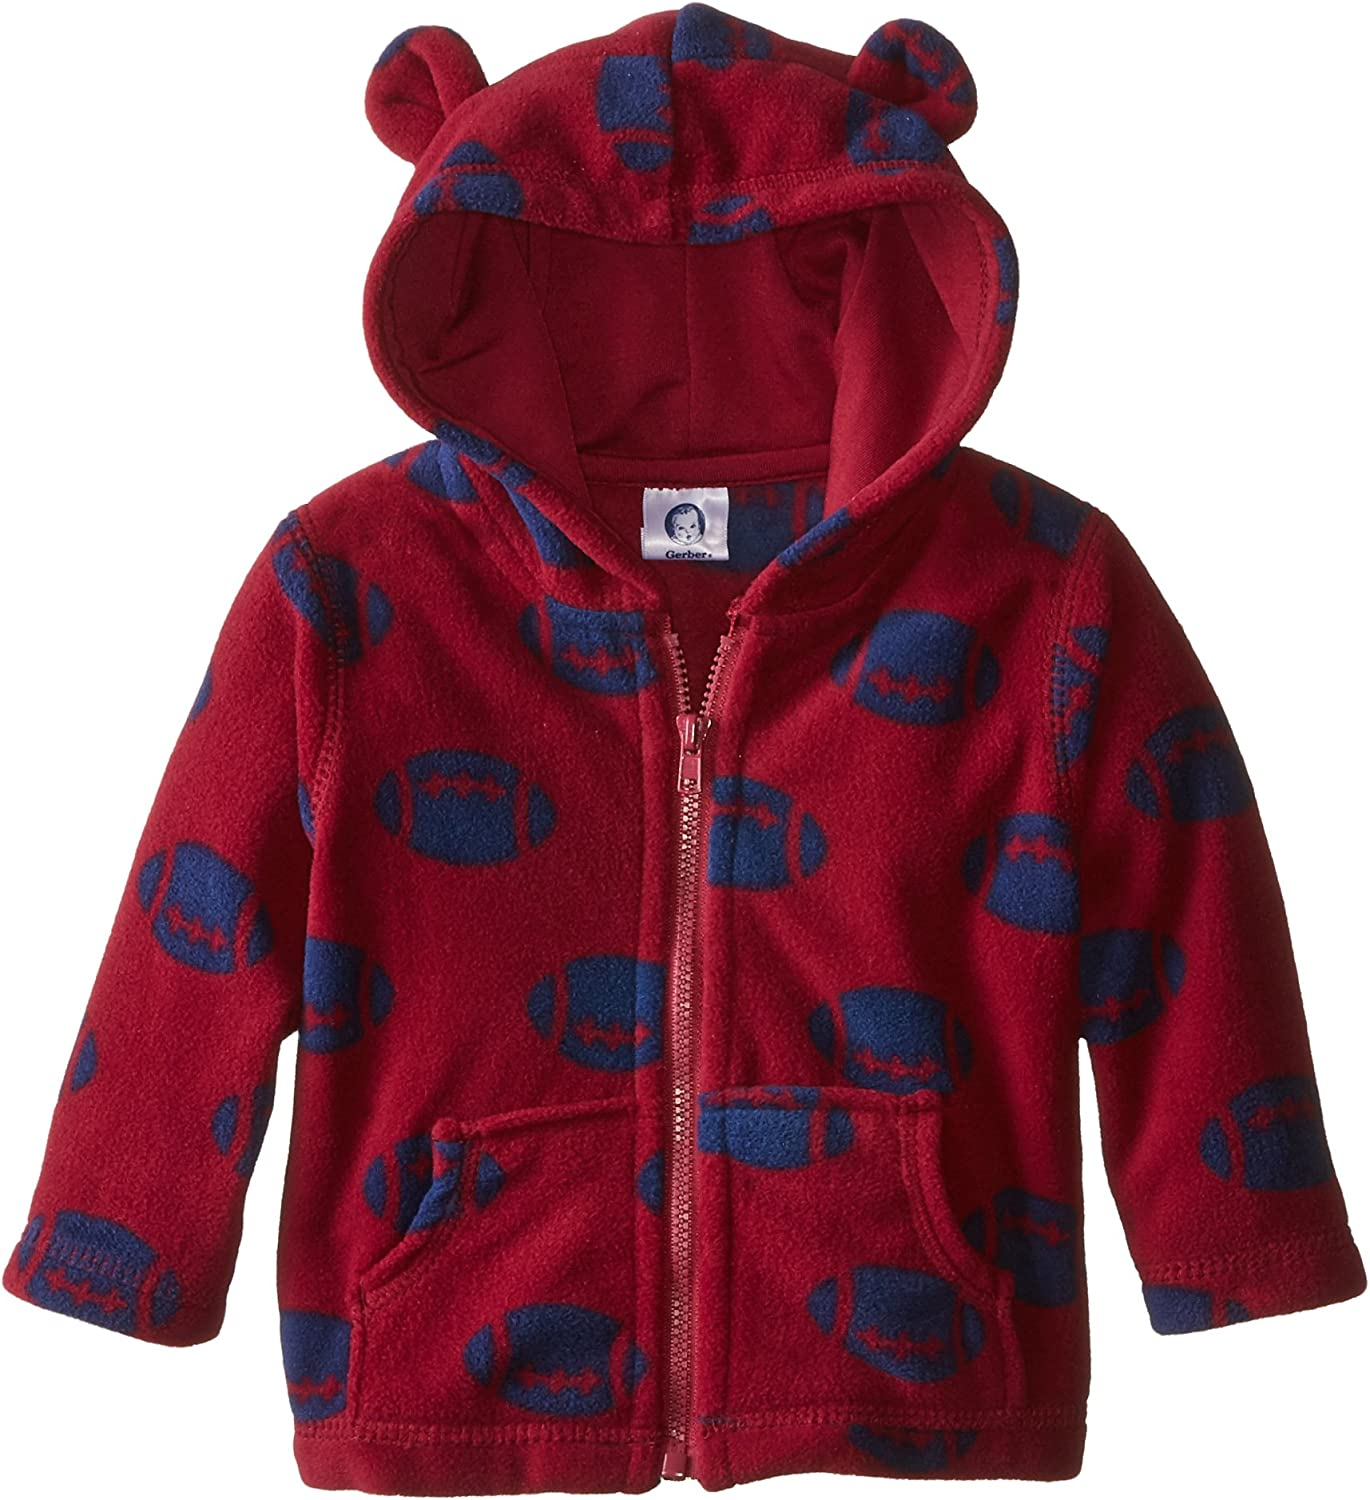 Gerber baby-boys Hooded Micro Fleece Jacket